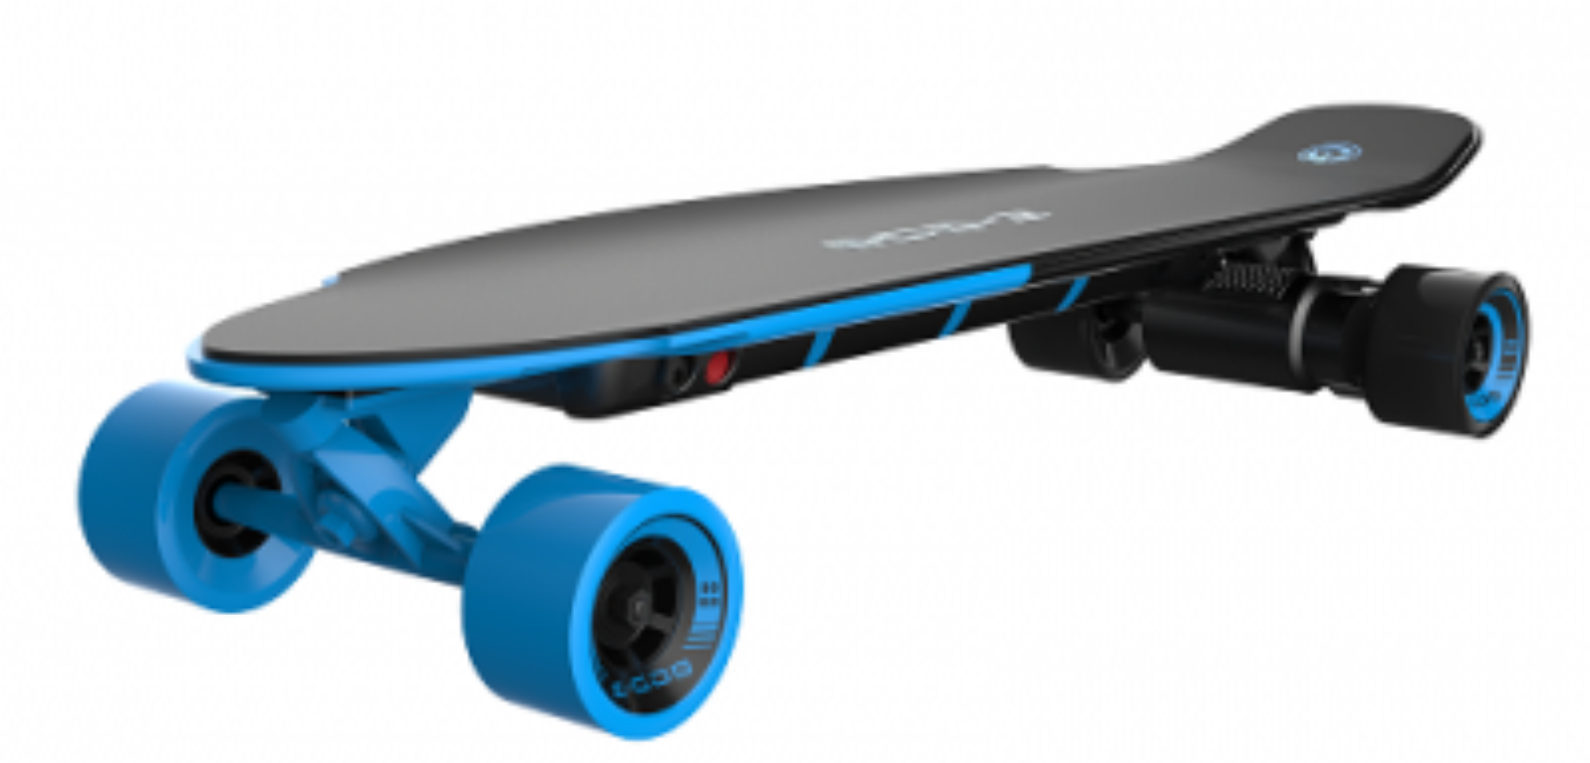 yuneec e go 2 elektro skateboard long board royal wave blau. Black Bedroom Furniture Sets. Home Design Ideas